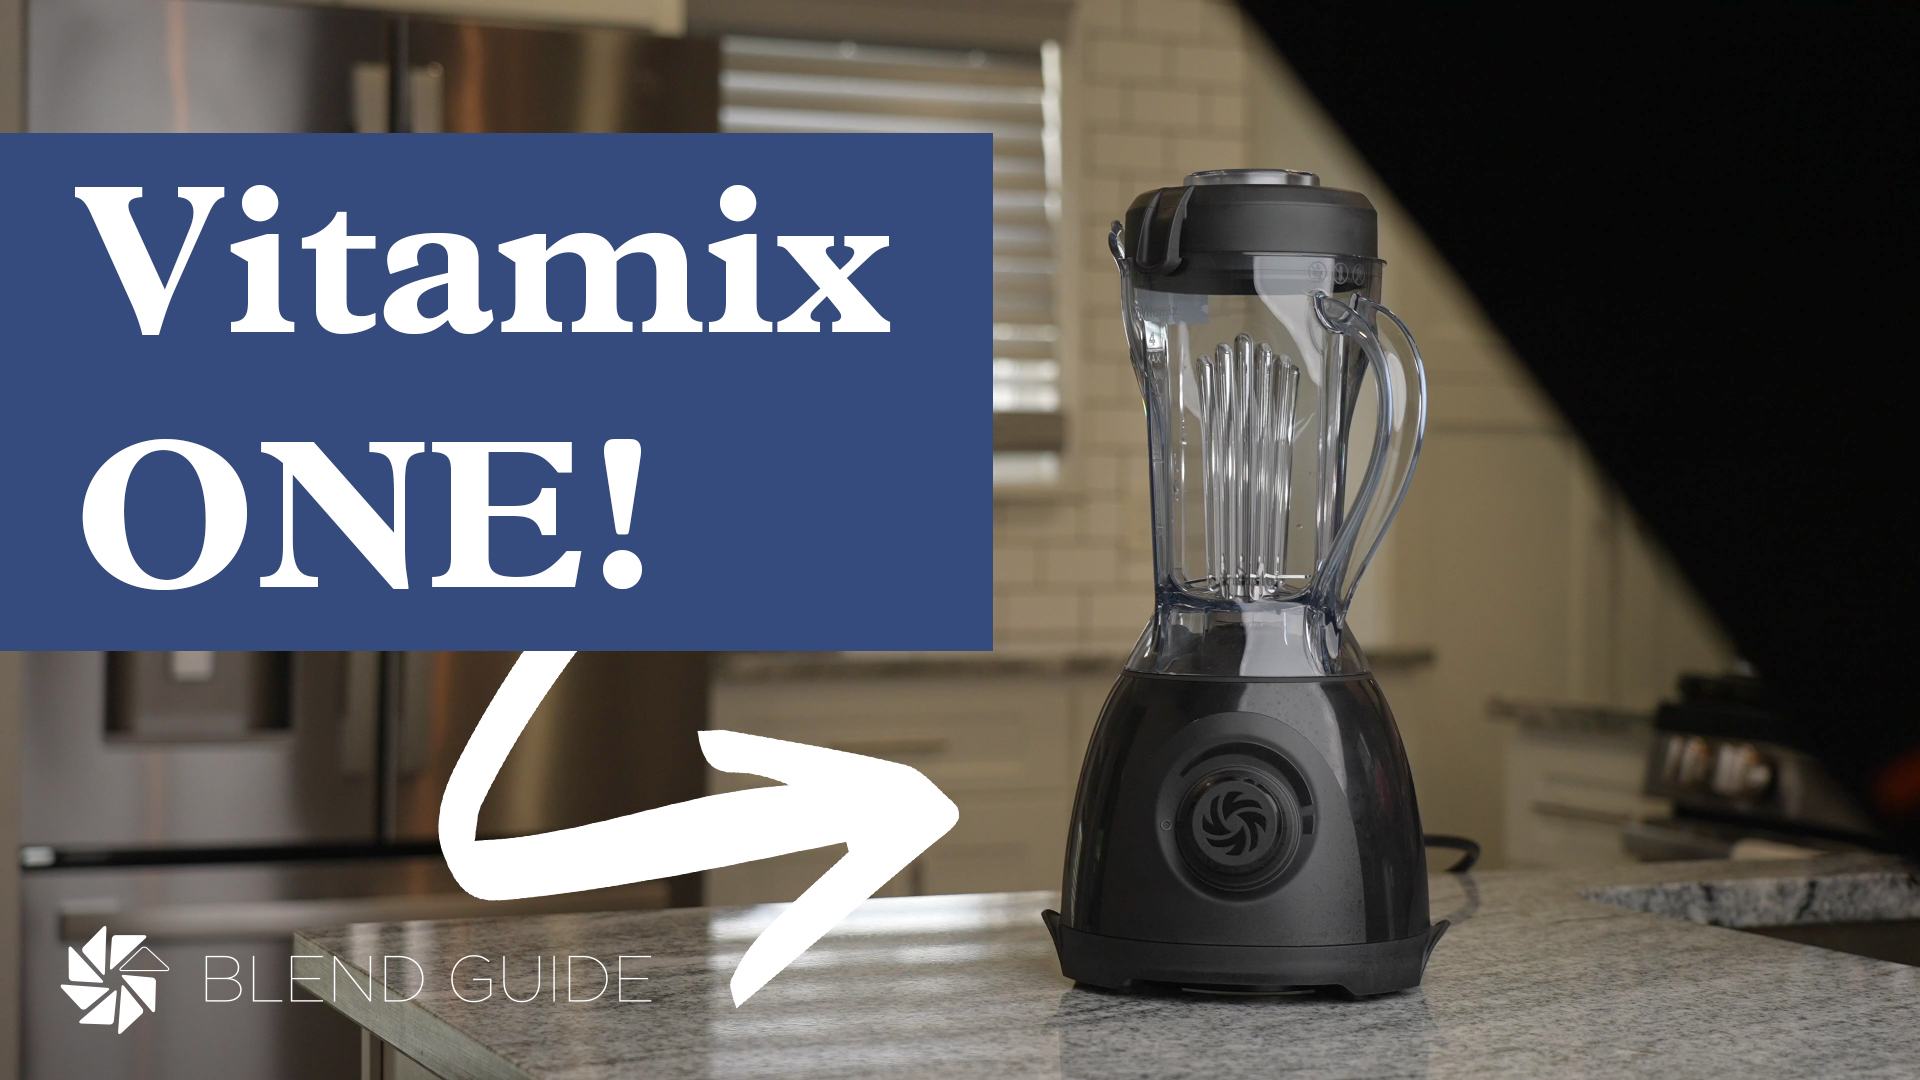 Vitamix one review post